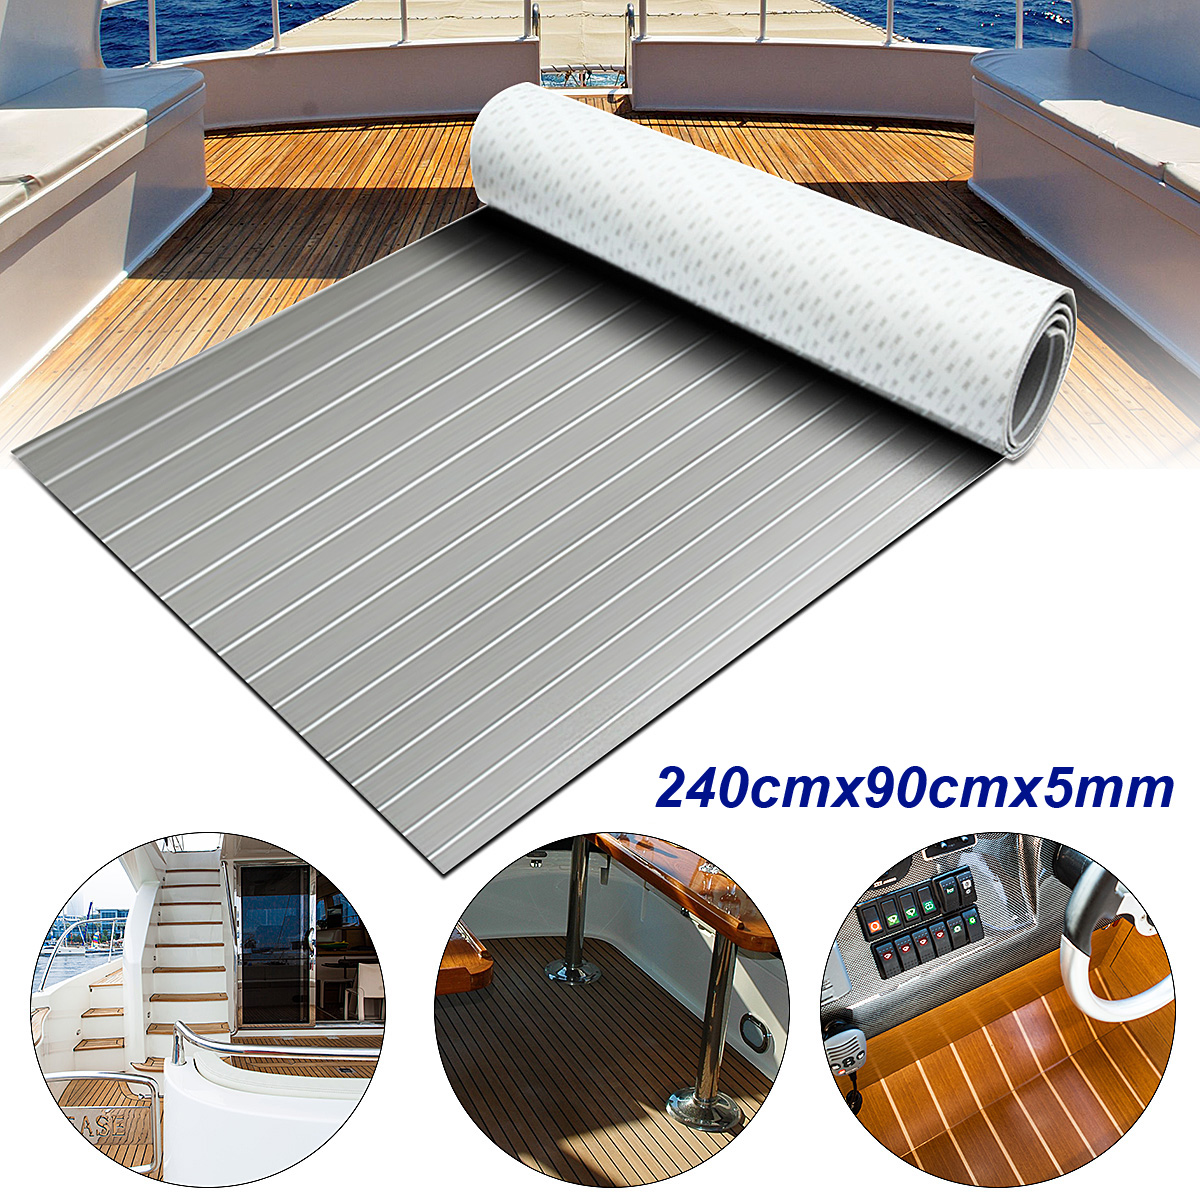 Self-Adhesive 240cmx90cmx5mm Teak Decking EVA Foam Marine Flooring Faux Grey White Lines EVA Foam Boat Decking Sheet Accessories